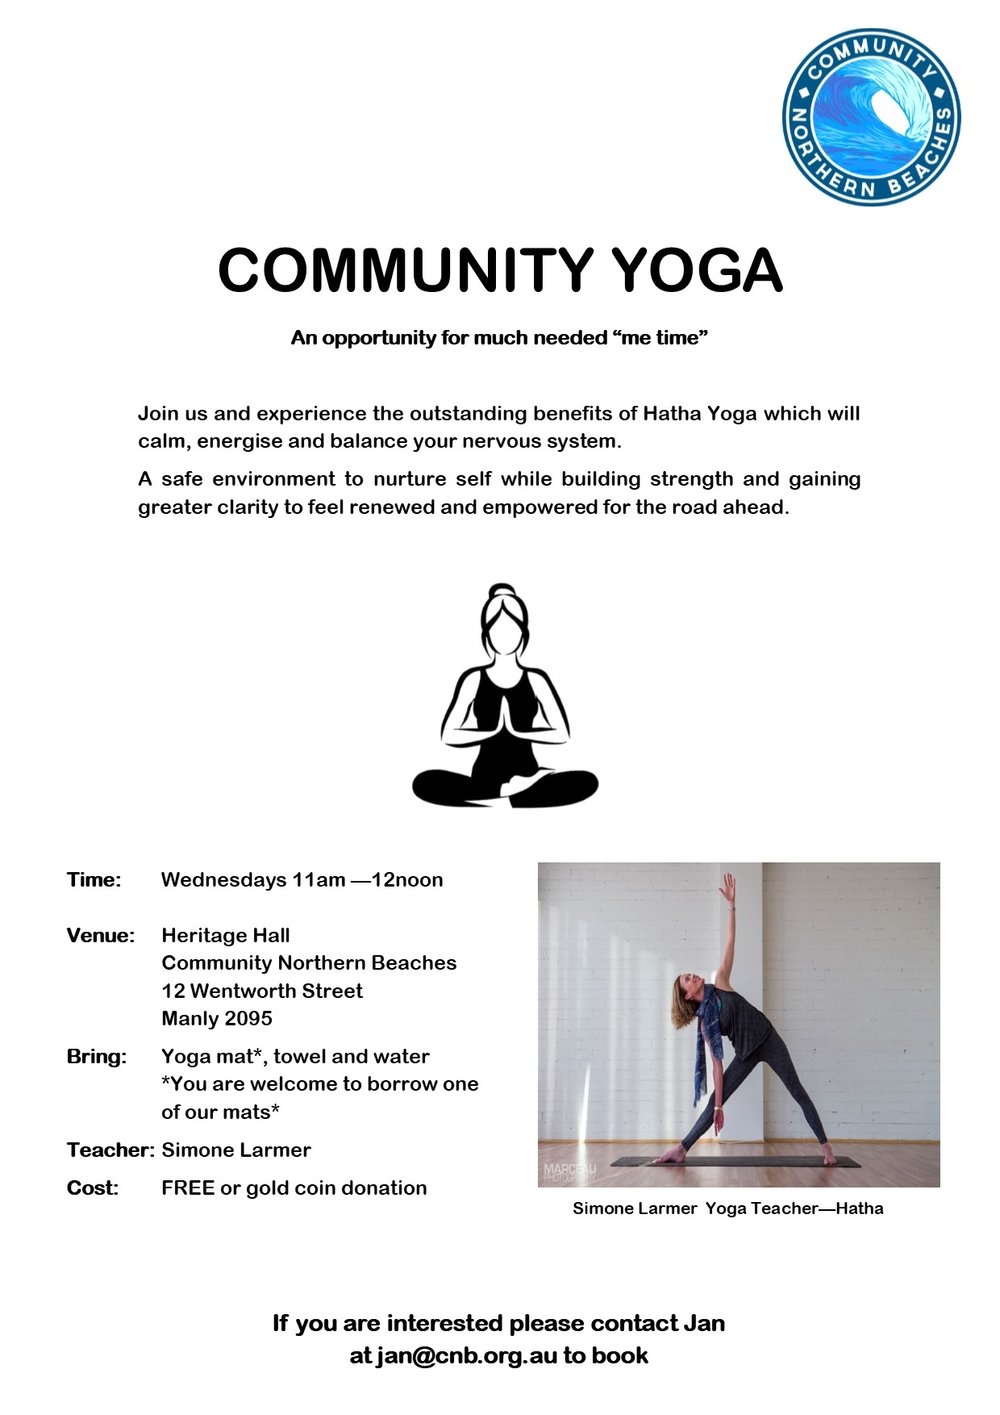 Community Yoga flyer - Simone Larmer.jpg